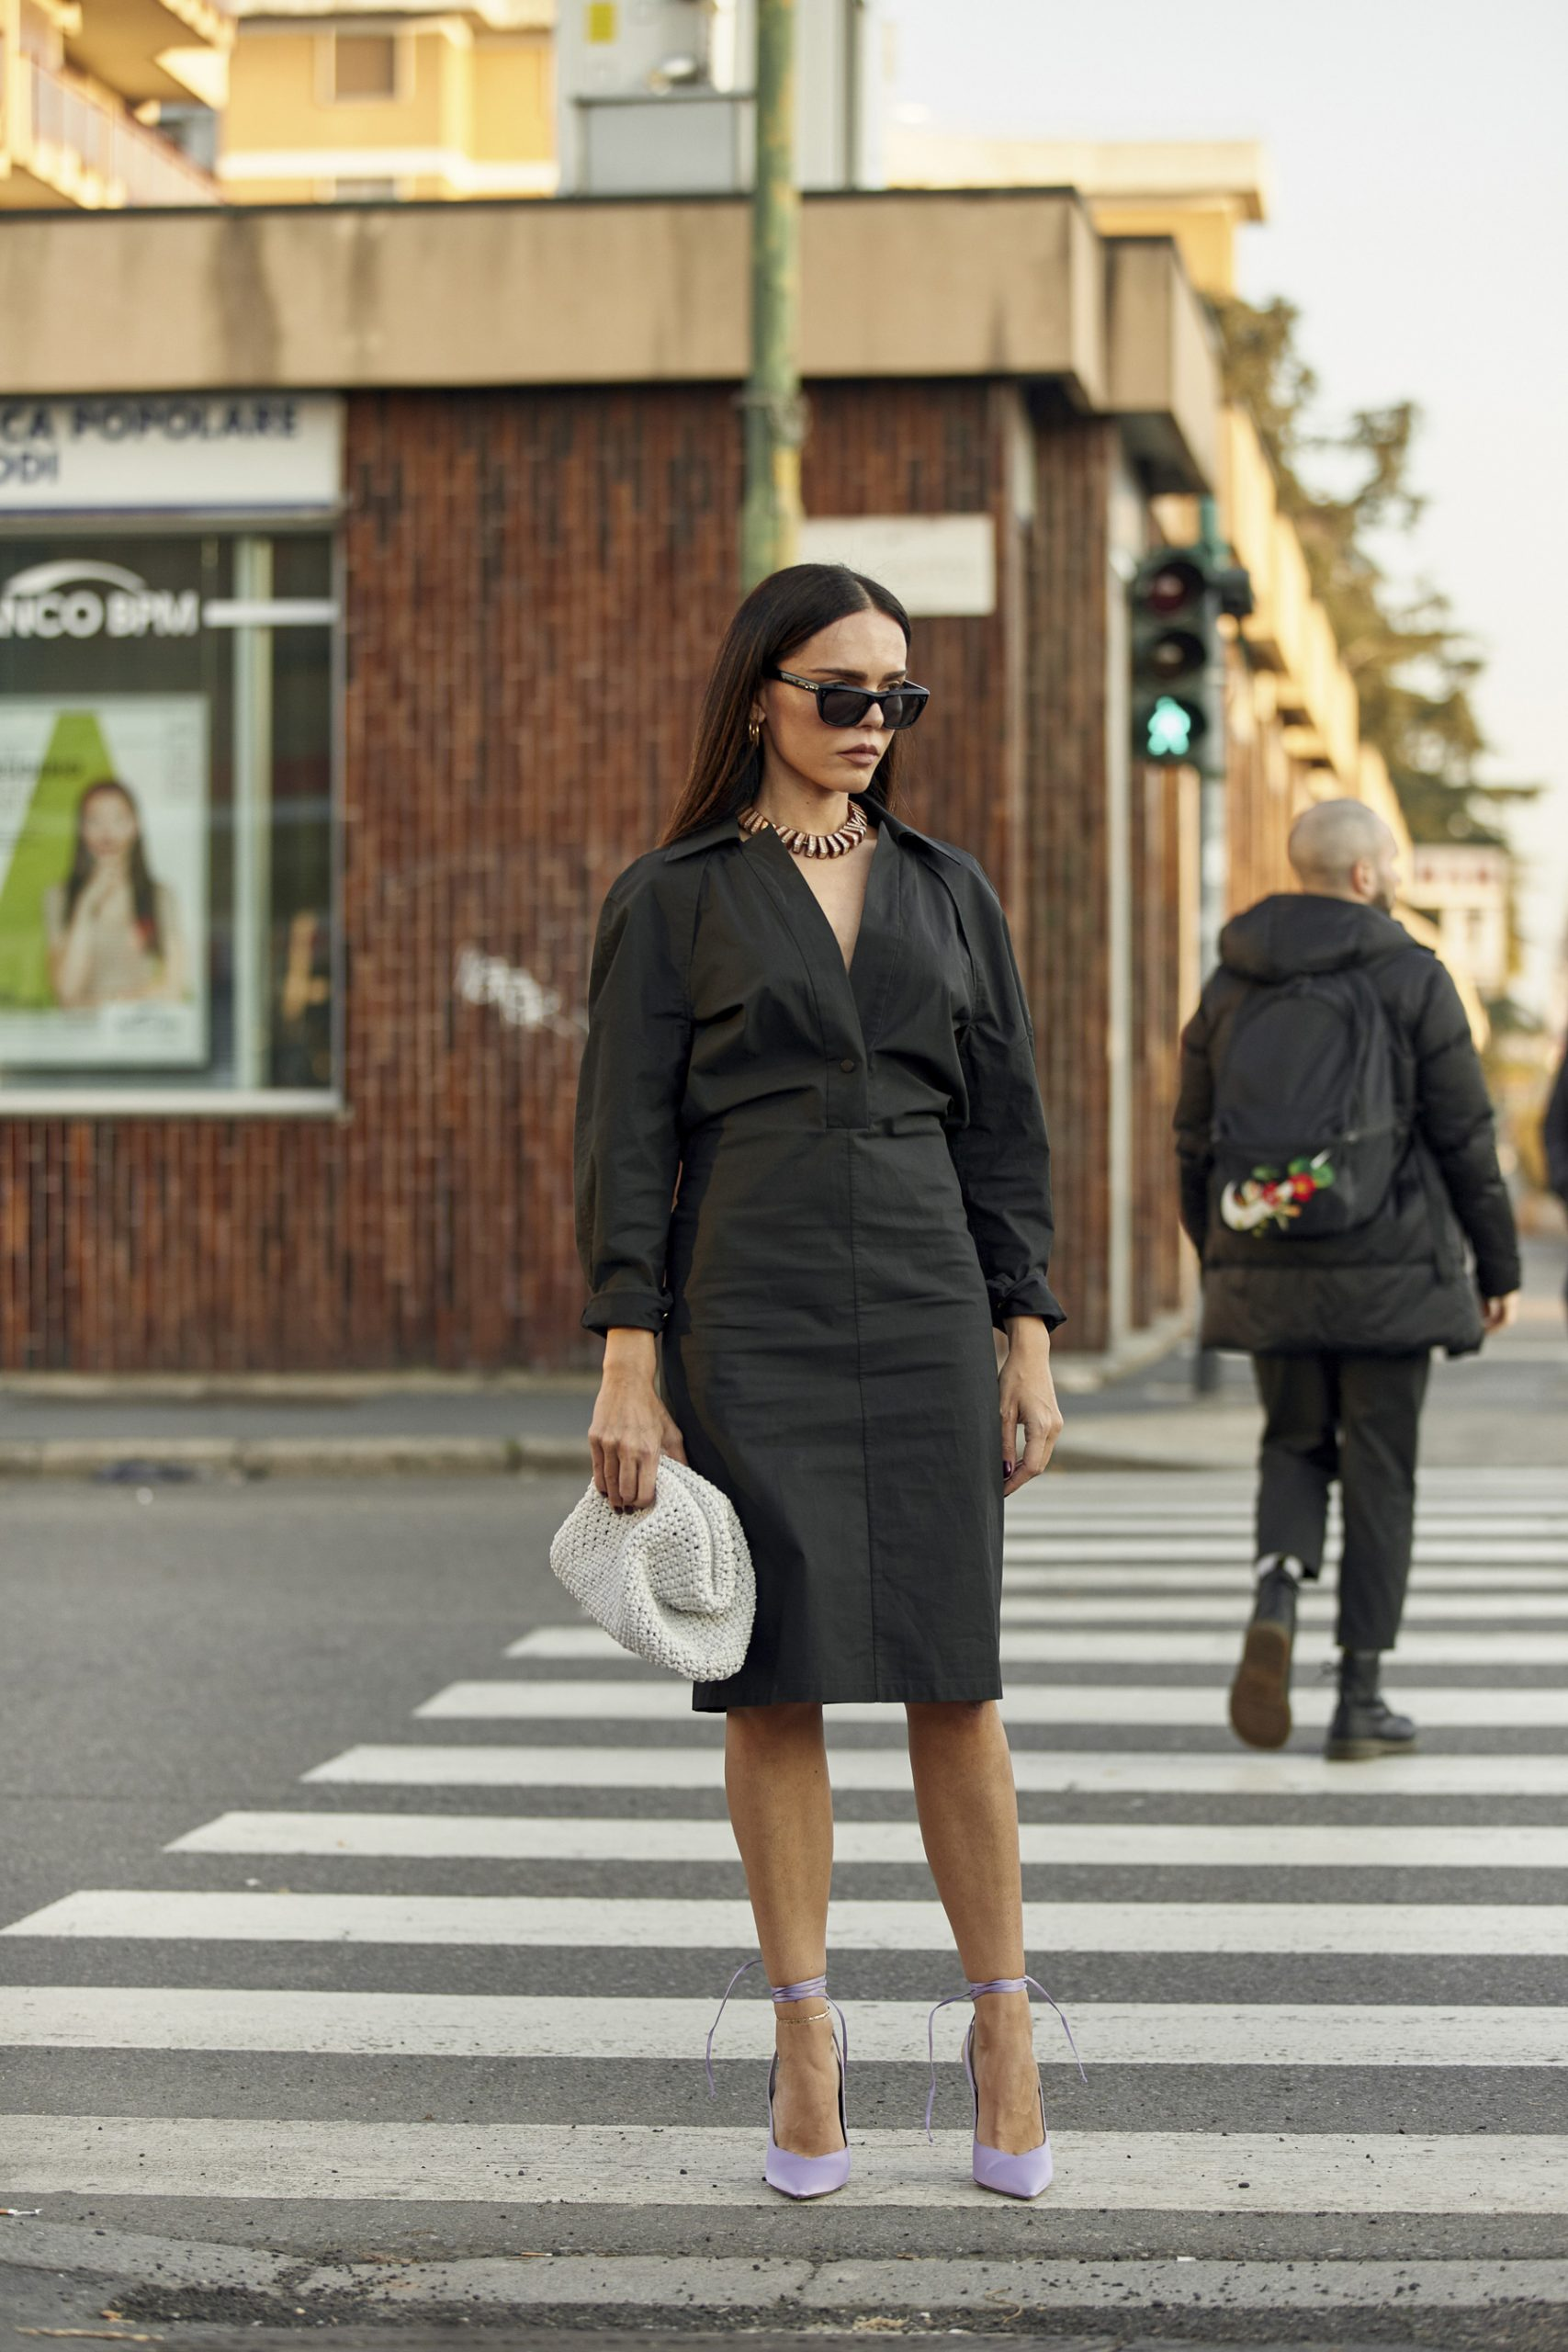 Milan Street Style Influencer Fall 2020 Looks